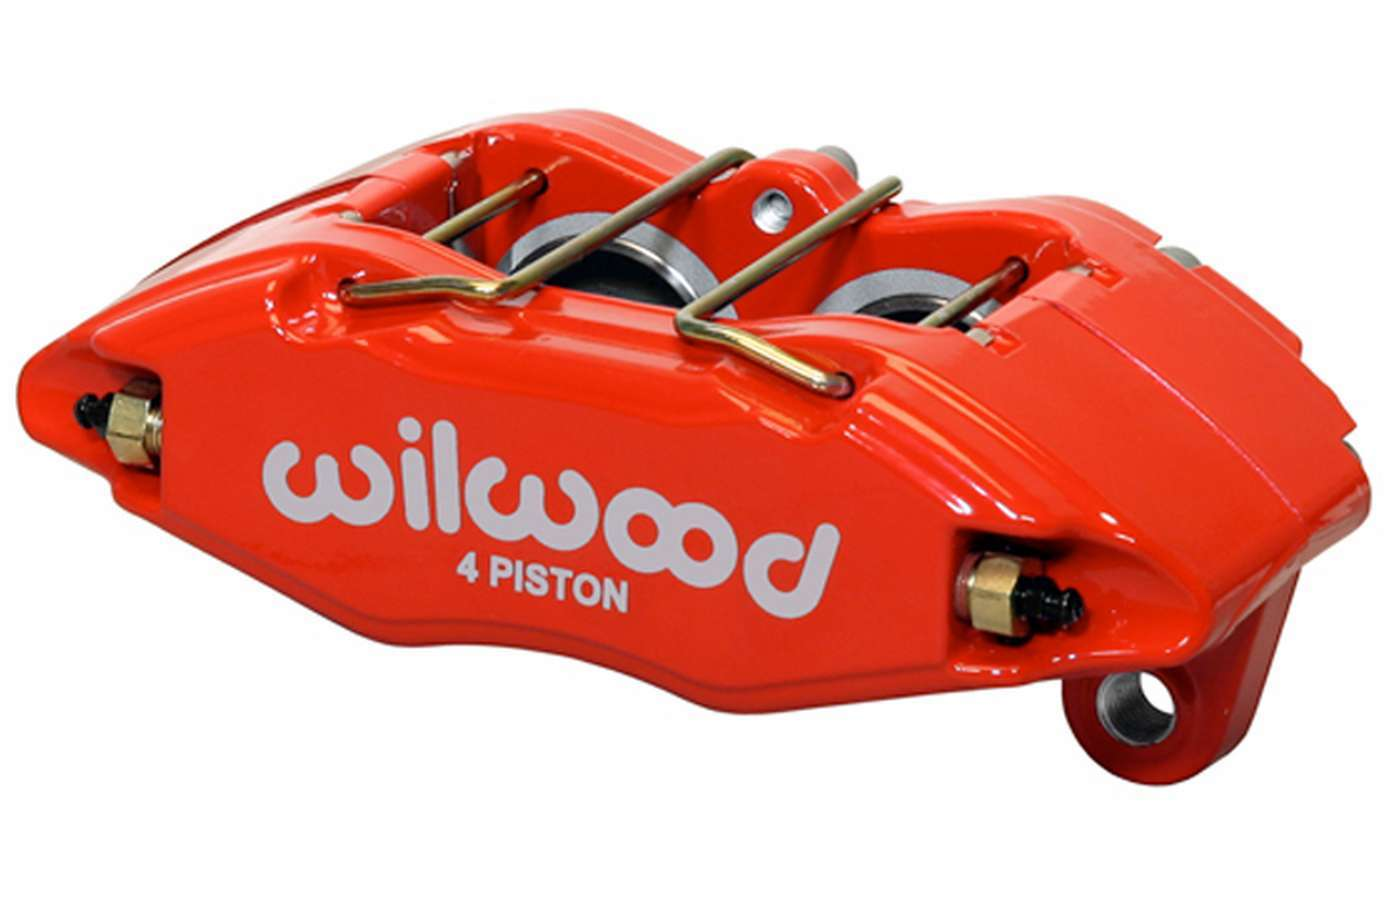 Wilwood 120-12949-RD Brake Caliper, DPHA, 4 Piston, Aluminum, Red Anodize, 10.320 in OD x 0.830 in Thick Rotor, 5.510 in Lug Mount, Each